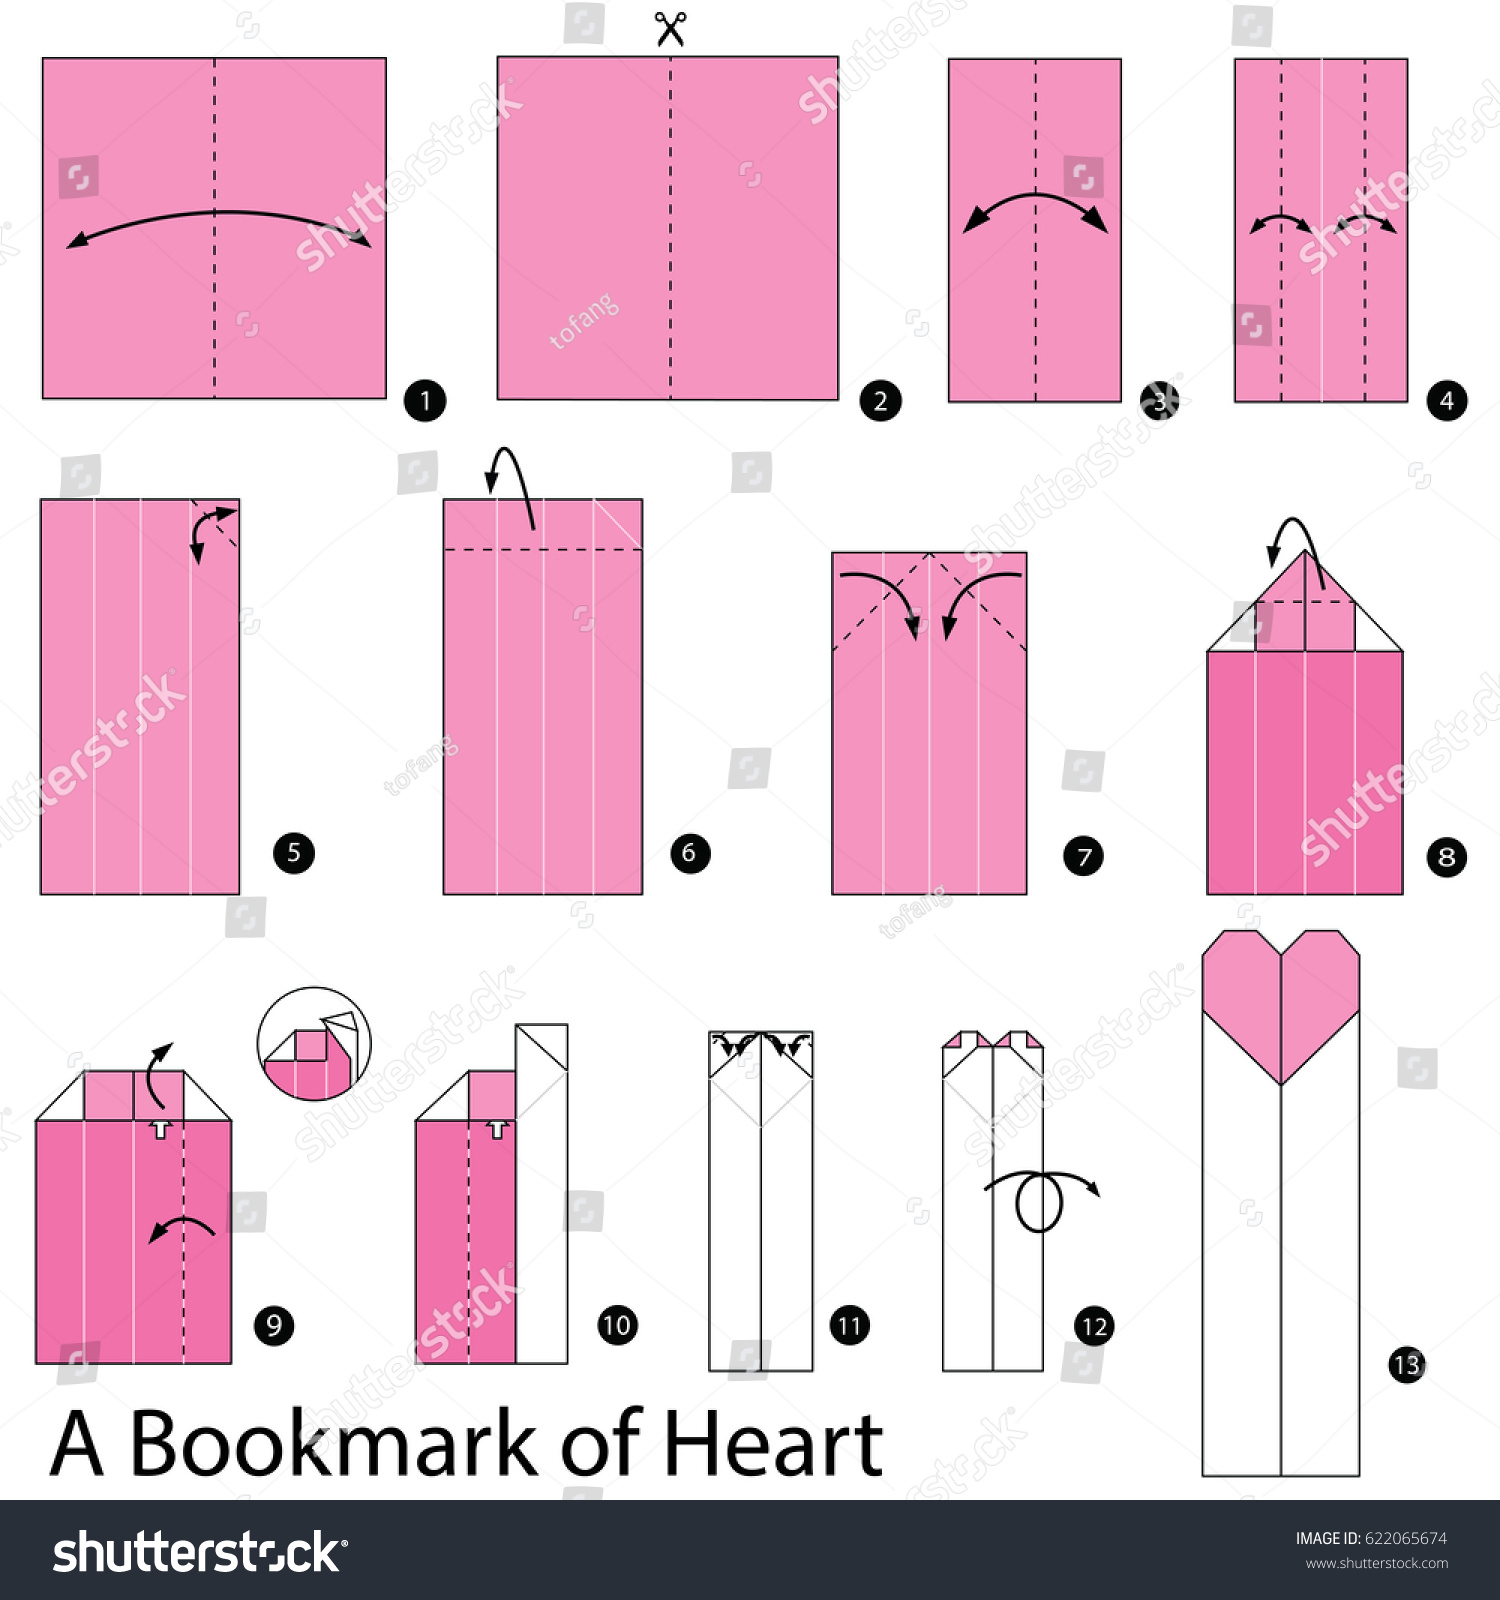 how to make an origami heart step by step